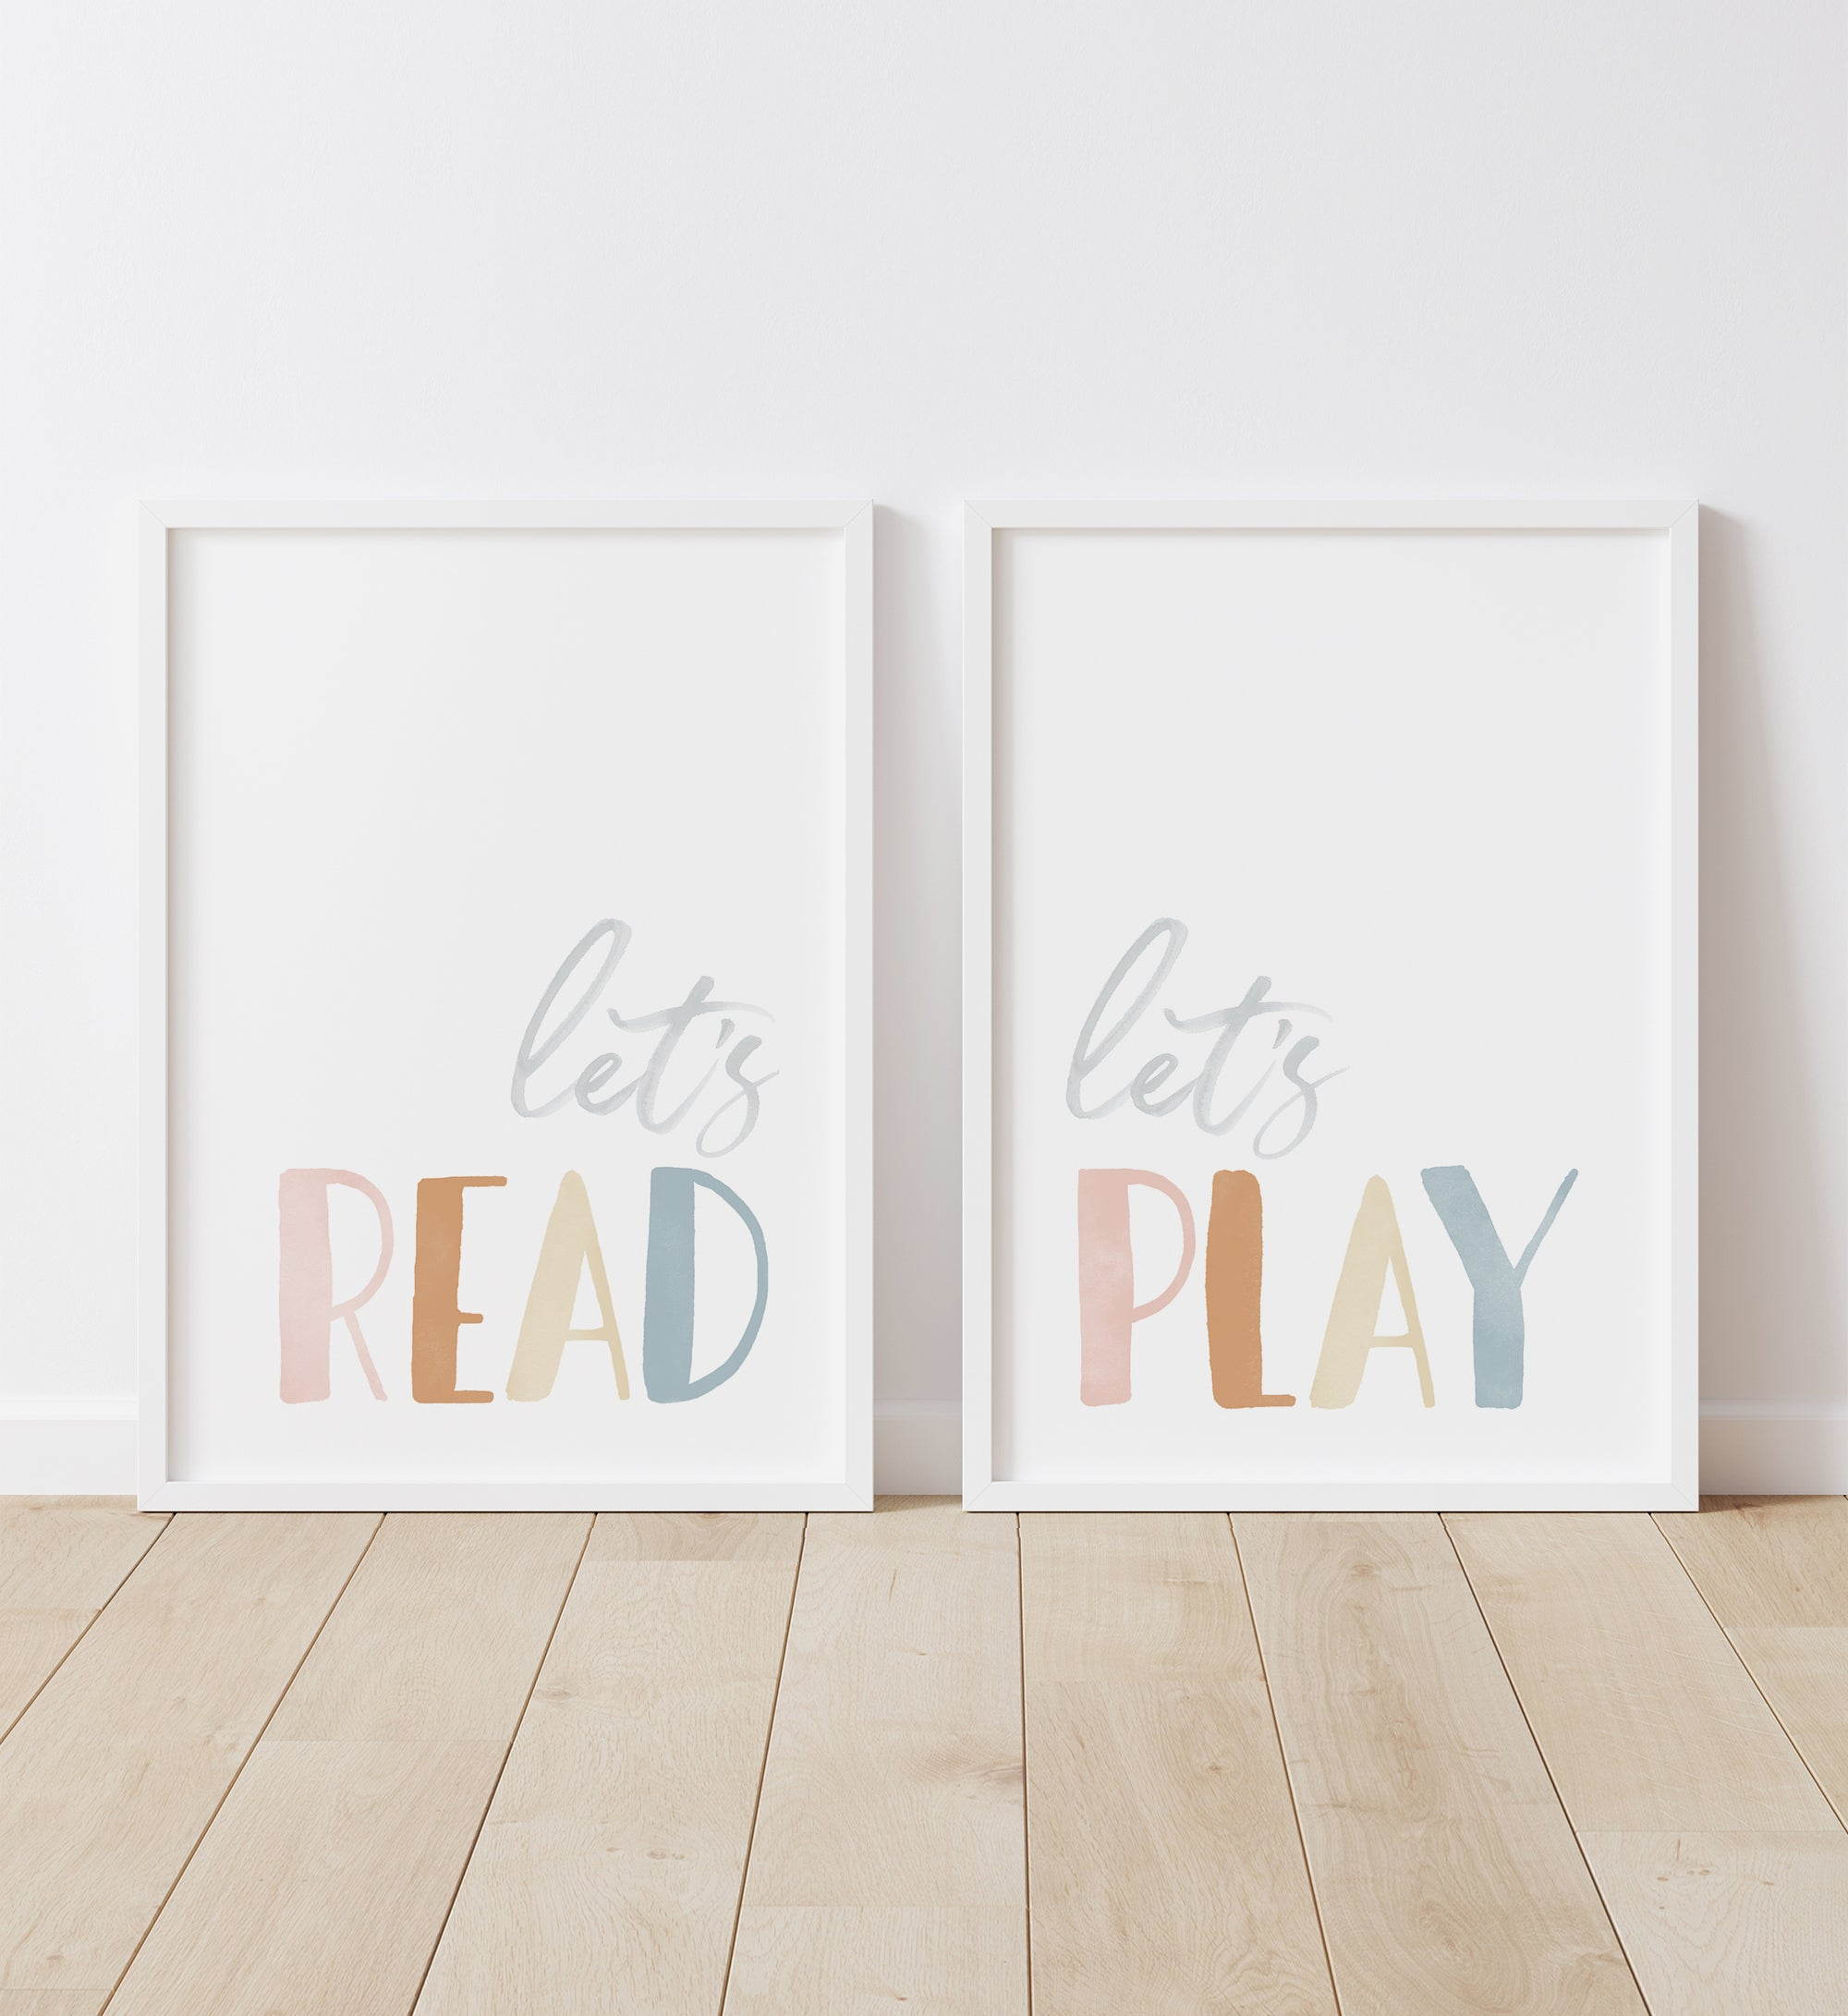 Let's Read, Let's Play - Boho